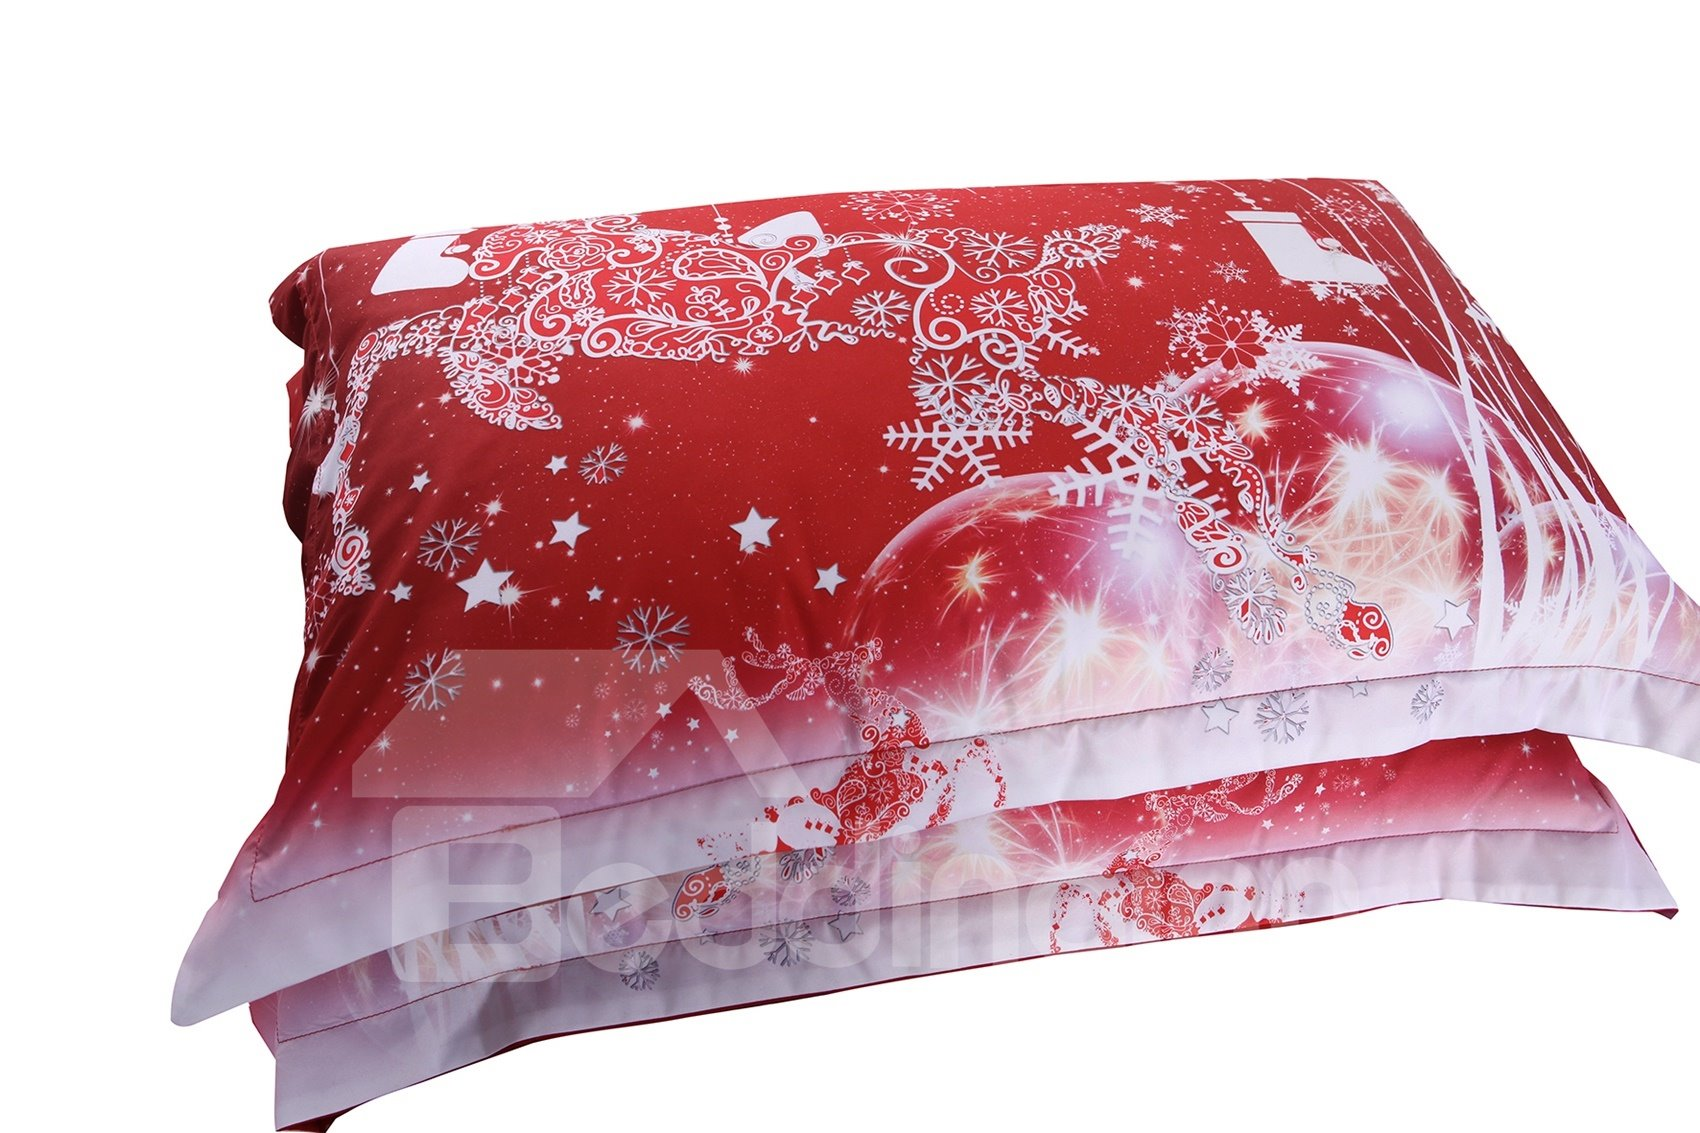 Vivilinen Christmas Reindeer and Snowflake Printed Cotton 3D 4-Piece Red Bedding Sets/Duvet Covers